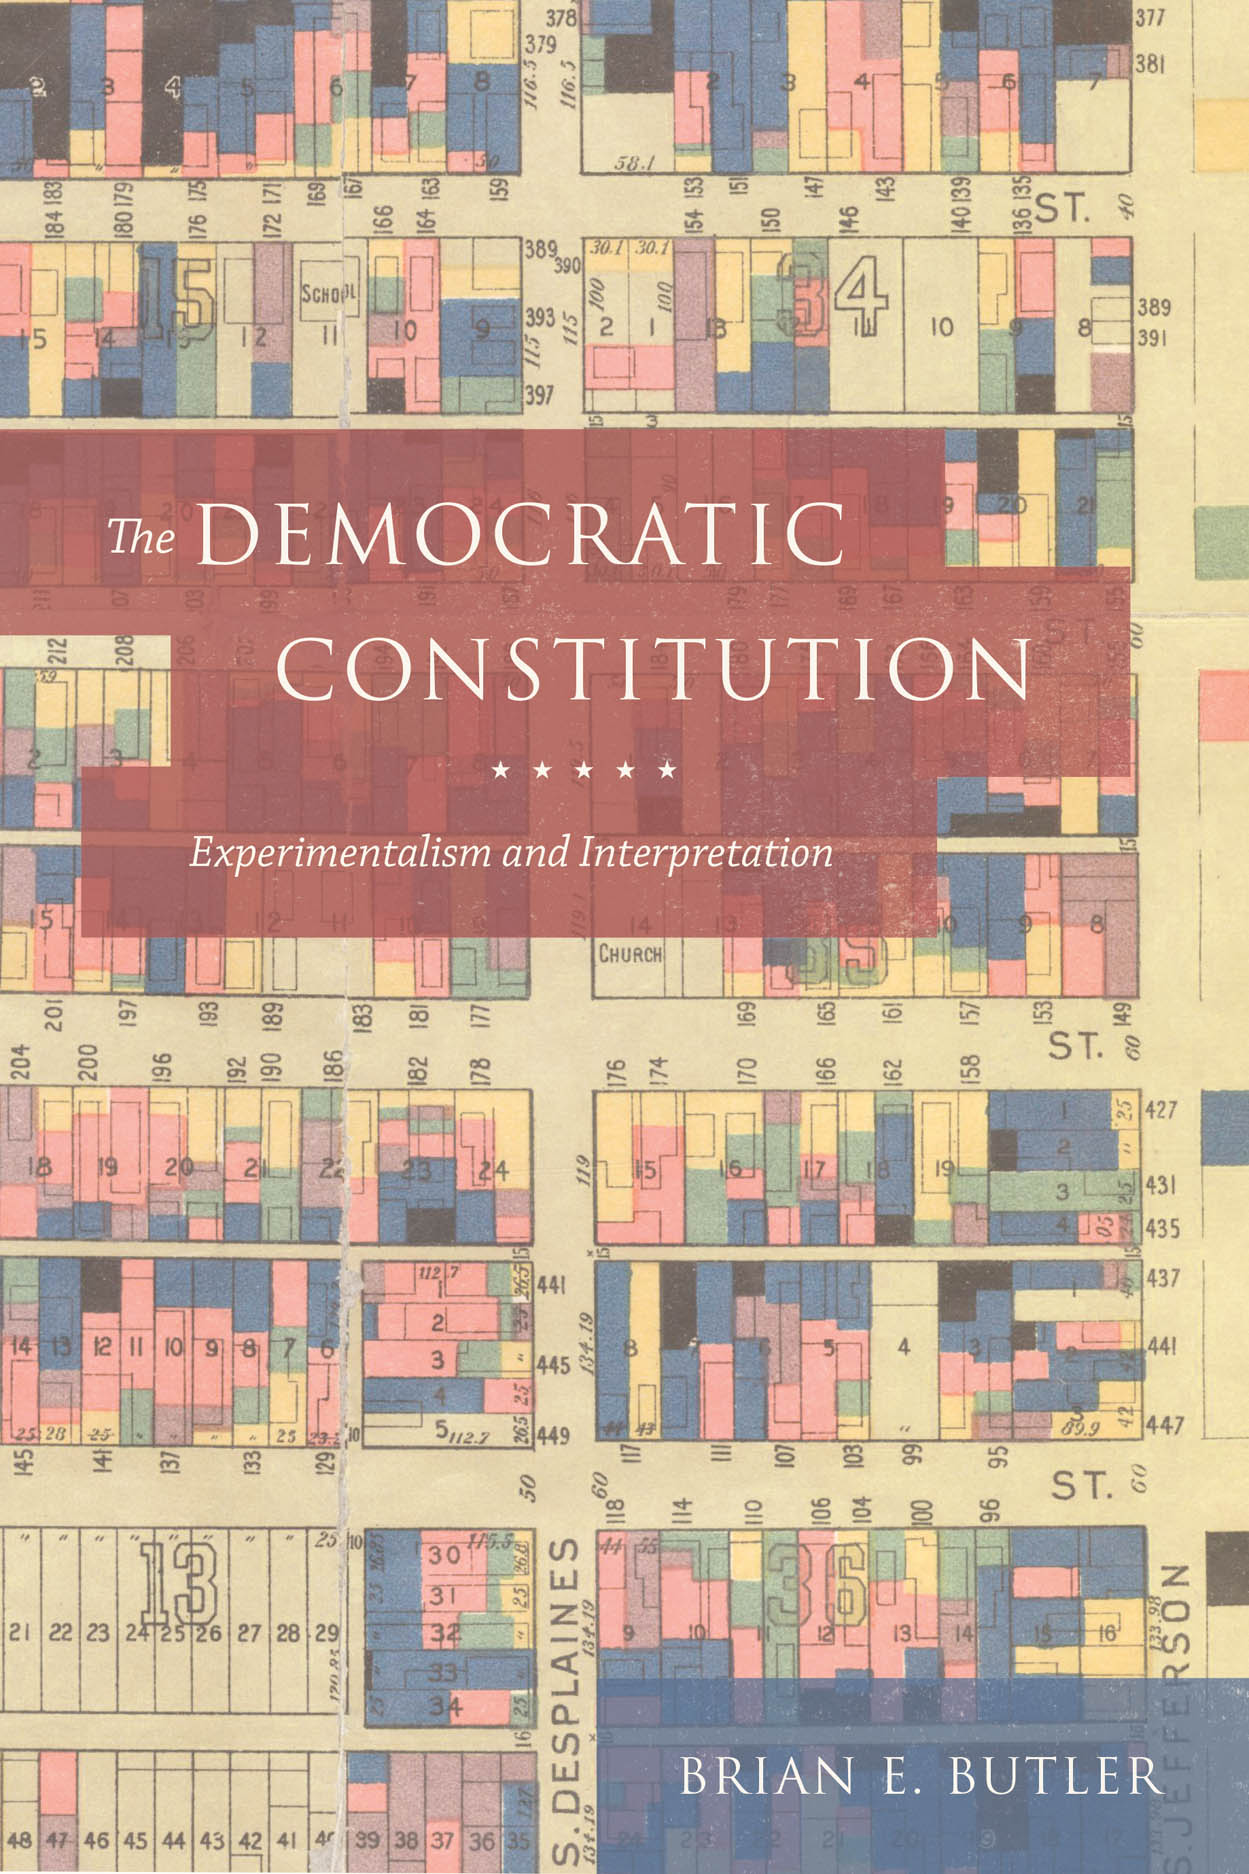 The Democratic Constitution: Experimentalism and Interpretation